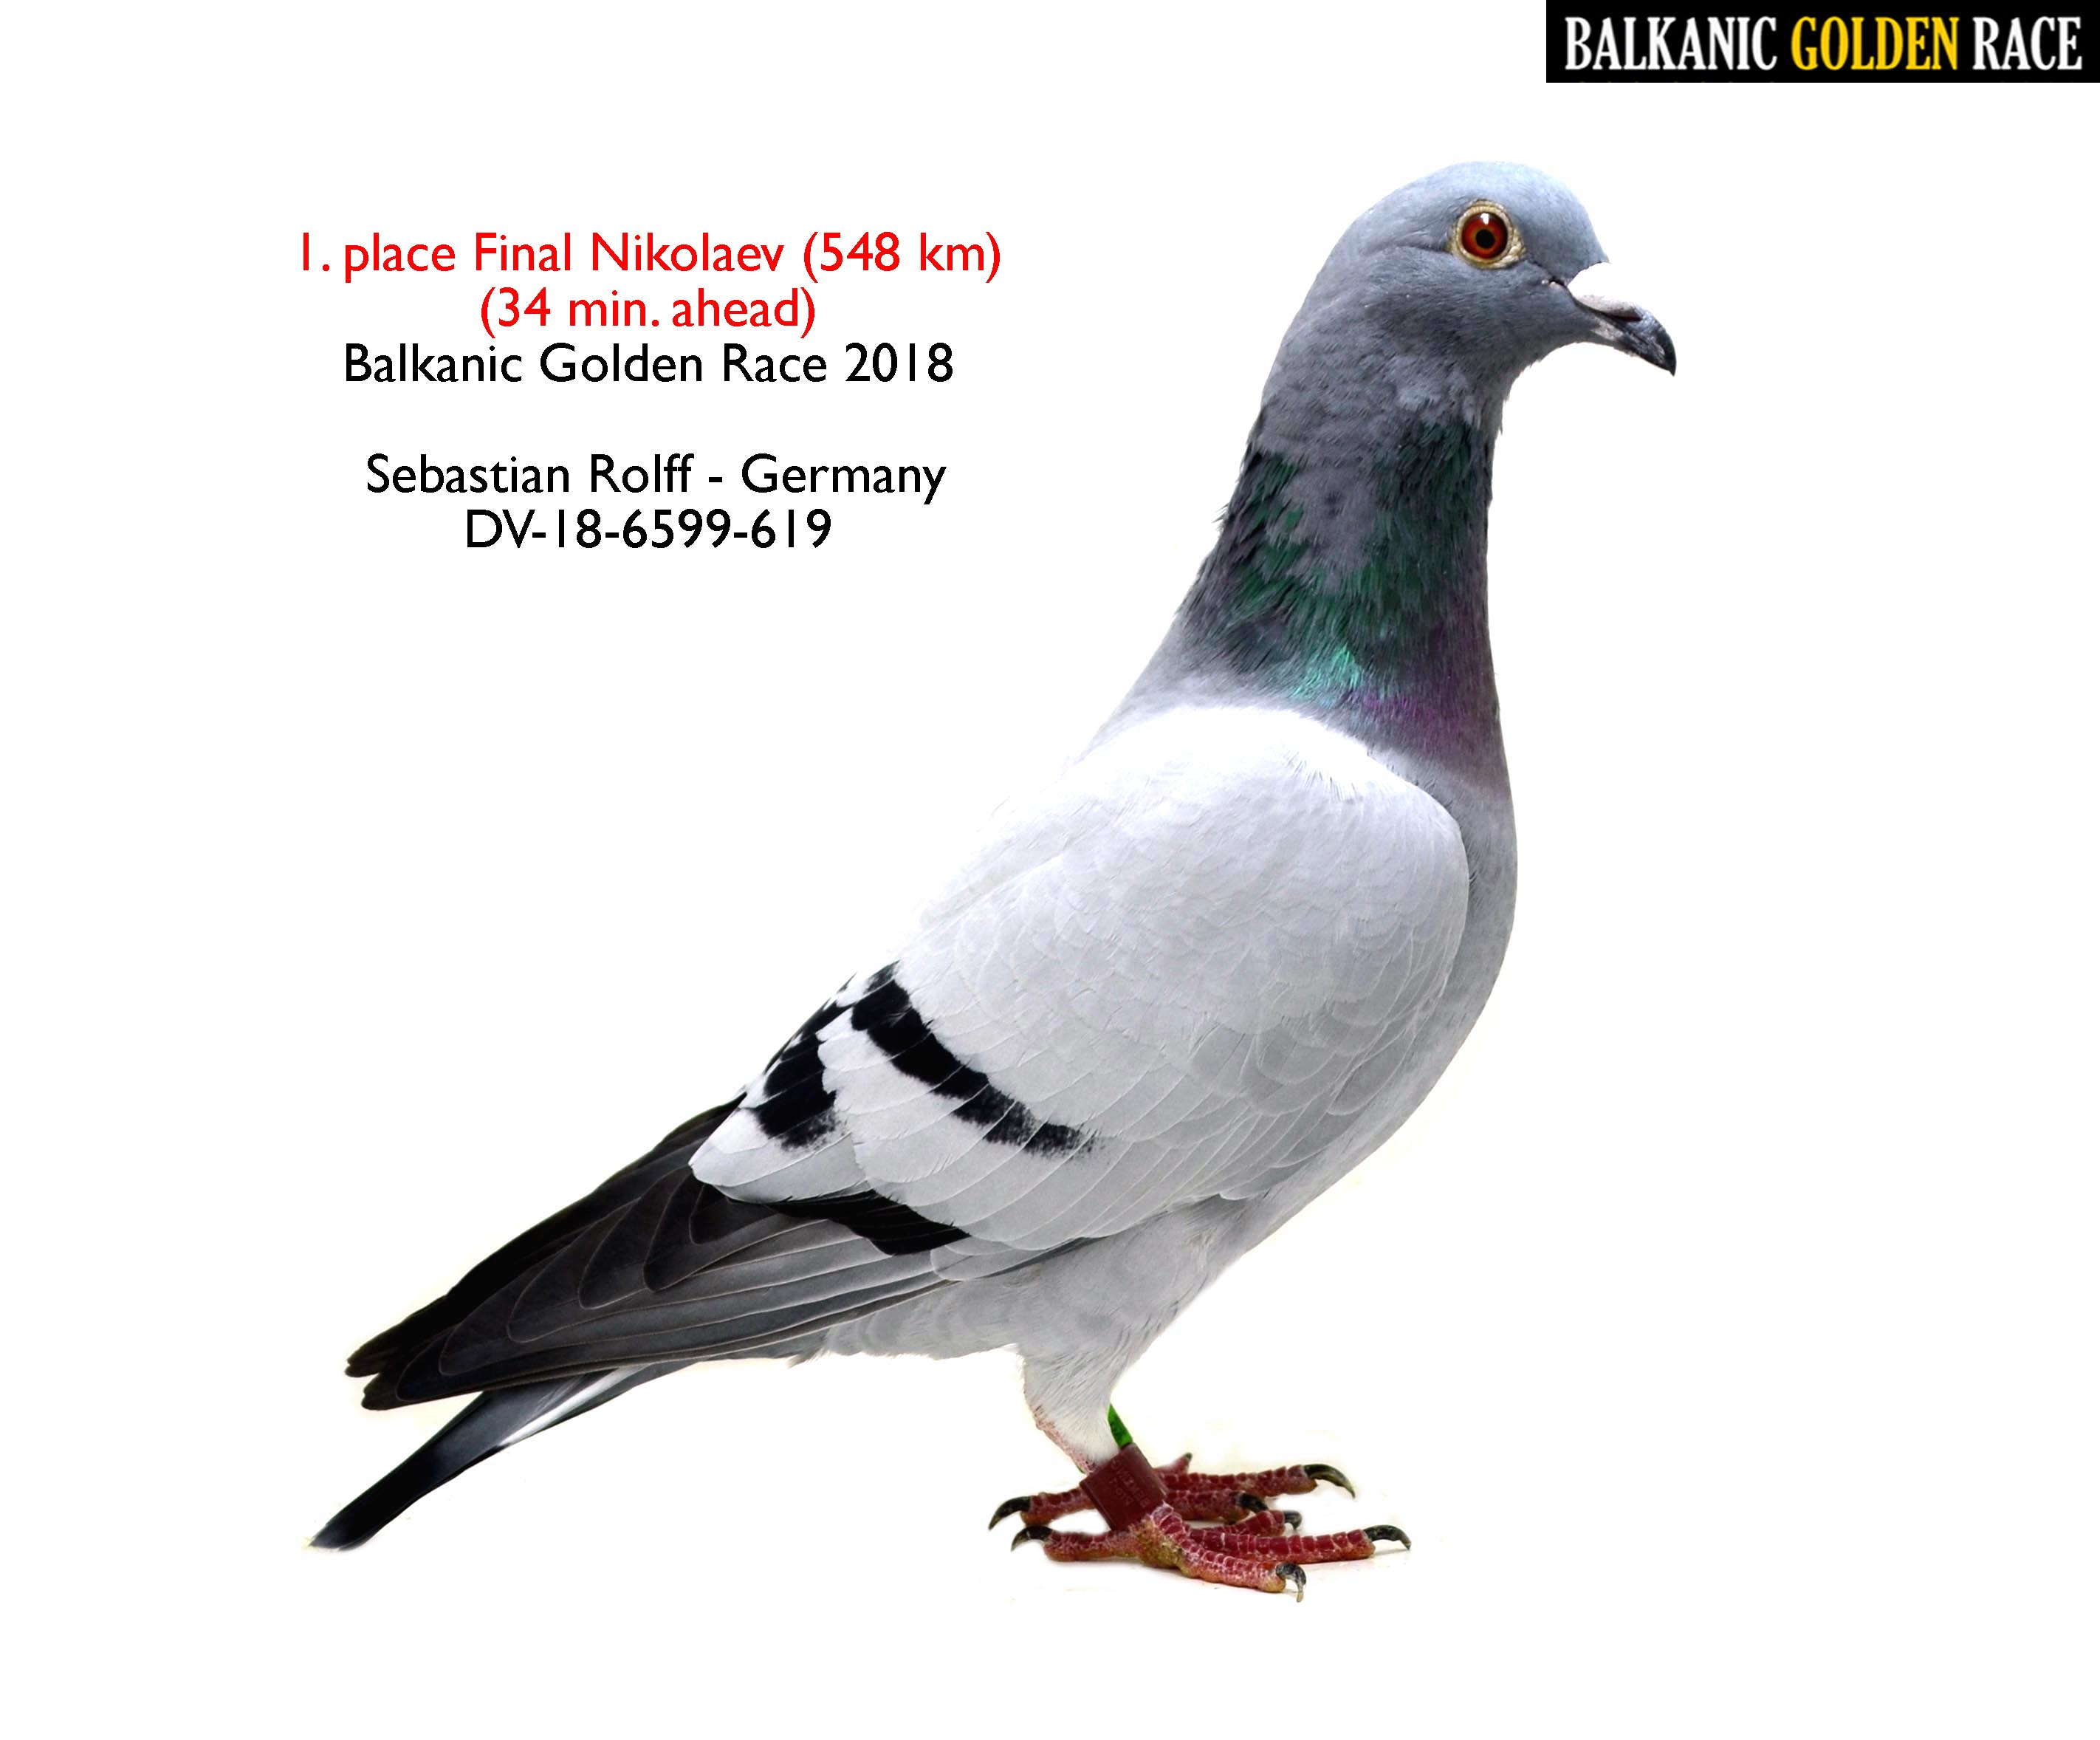 DV 4858 16 1886 M - Full sister 2 Ace pigeon Million Dollar Race; sister mother 1 final BGR